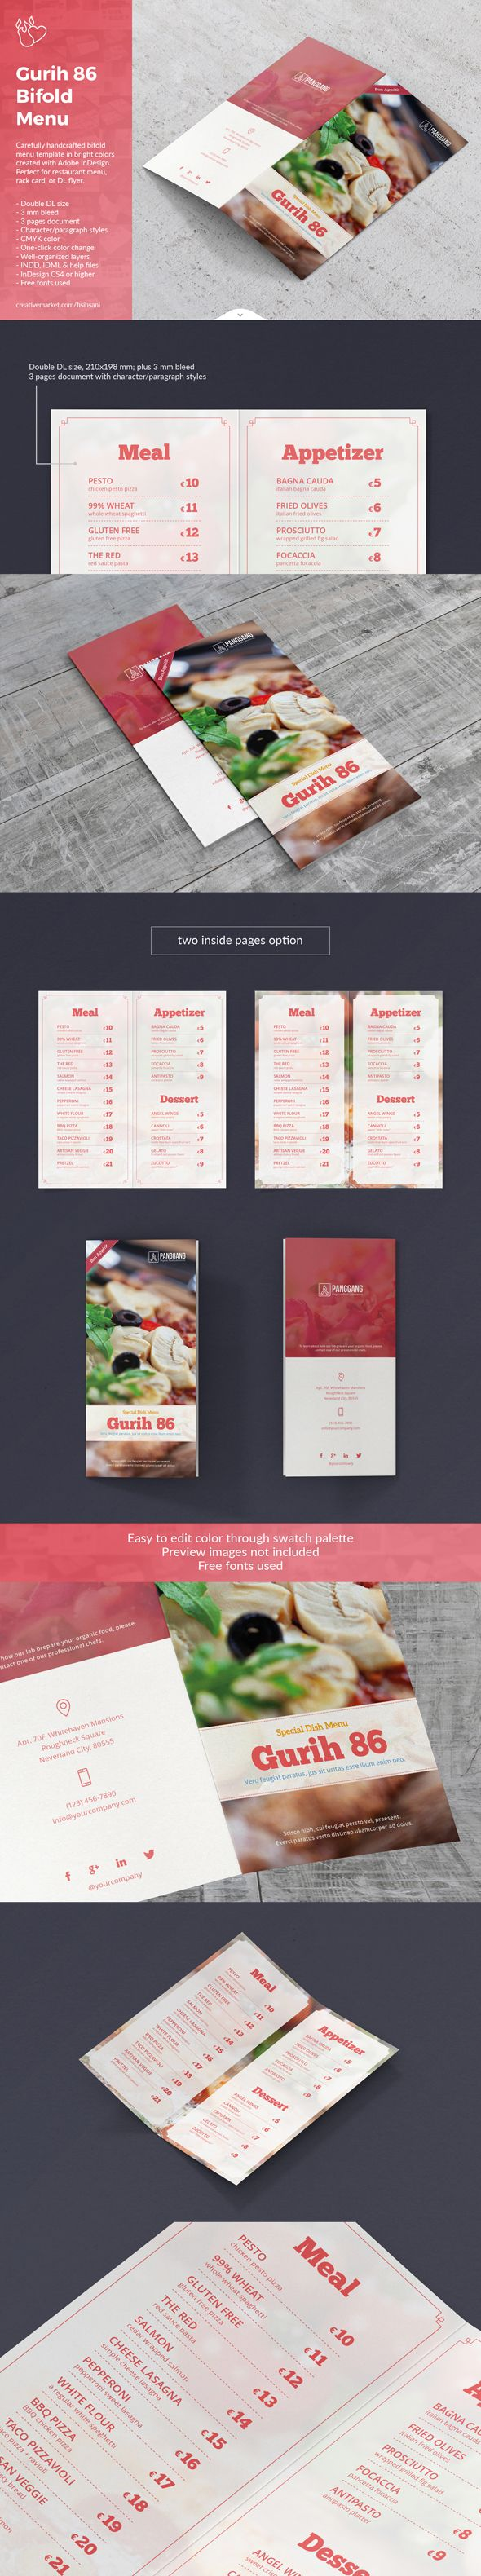 Carefully handcrafted bifold menu template in bright colors created with Adobe InDesign. Available with character/paragraph styles. Perfect to combined with Gurih 86 Cookbook [crmrkt.com/JXGgR].